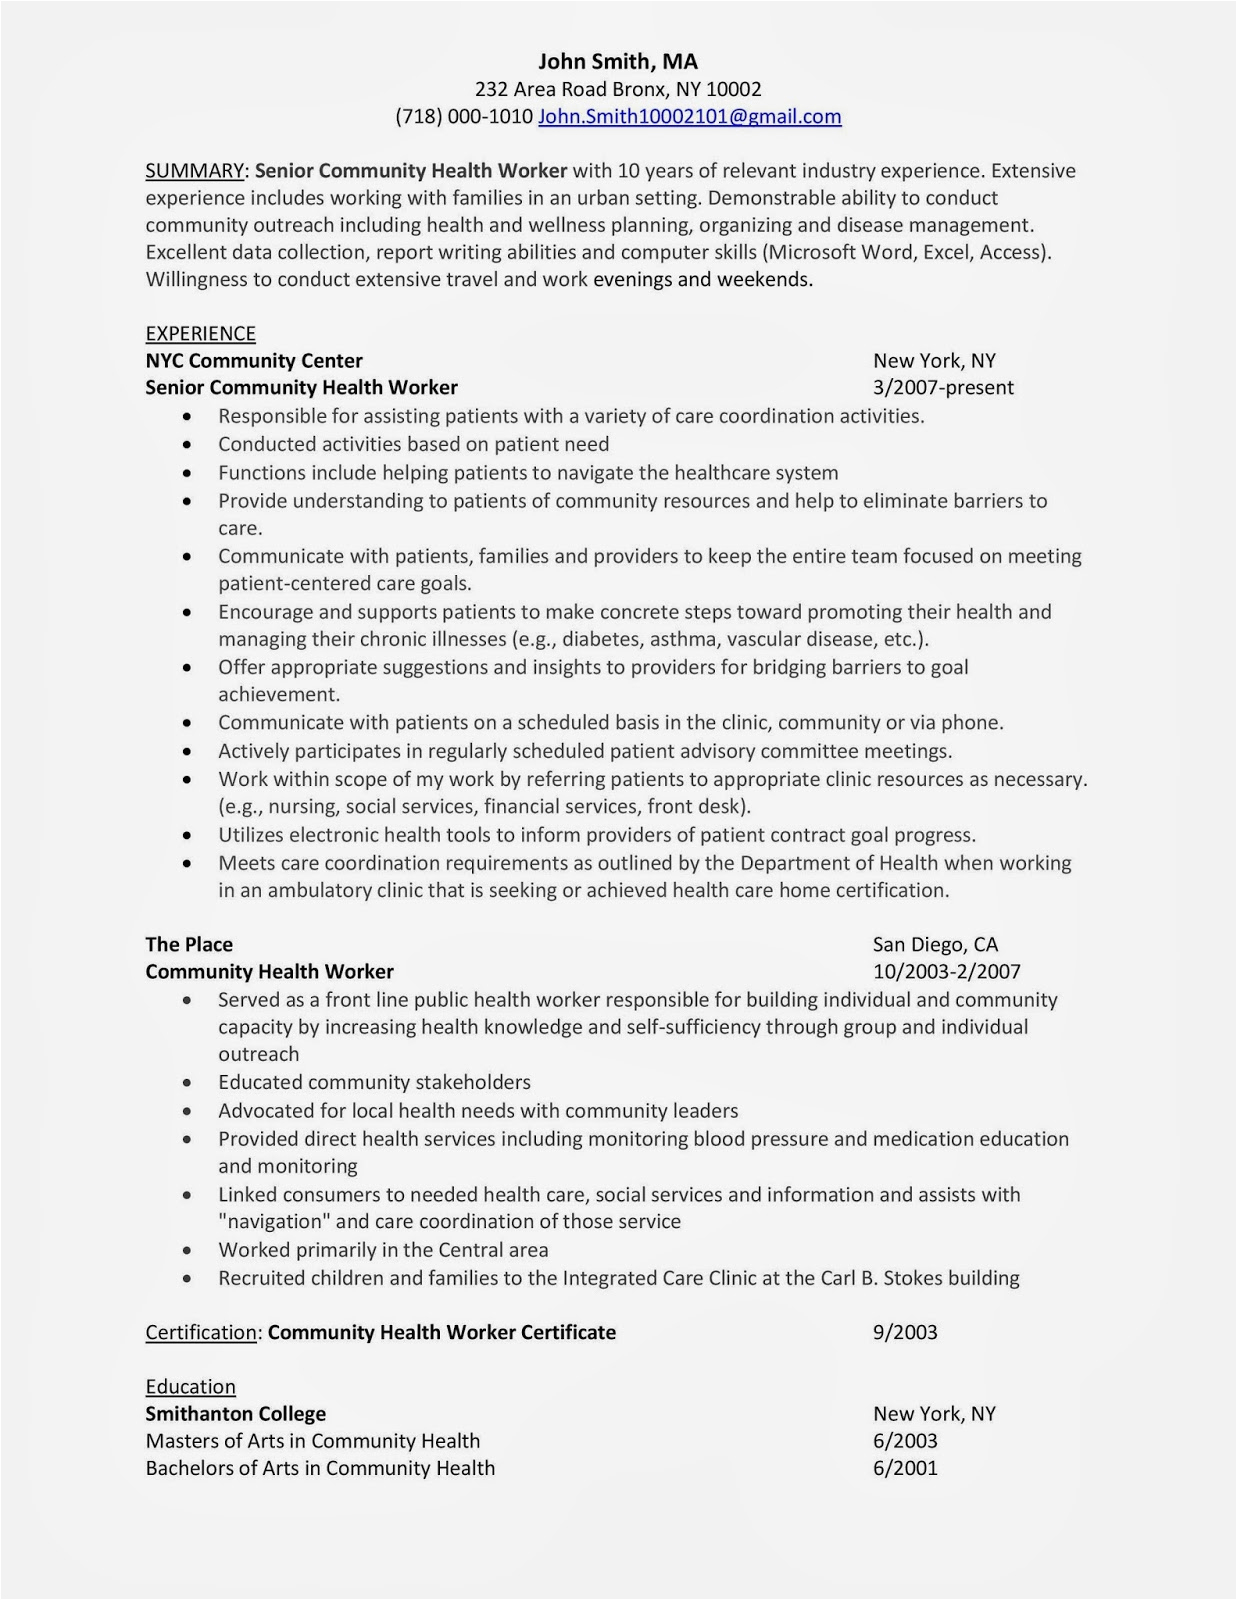 Sample Resume for Aged Care Worker with No Experience 12 13 Cover Letter for Aged Care Worker